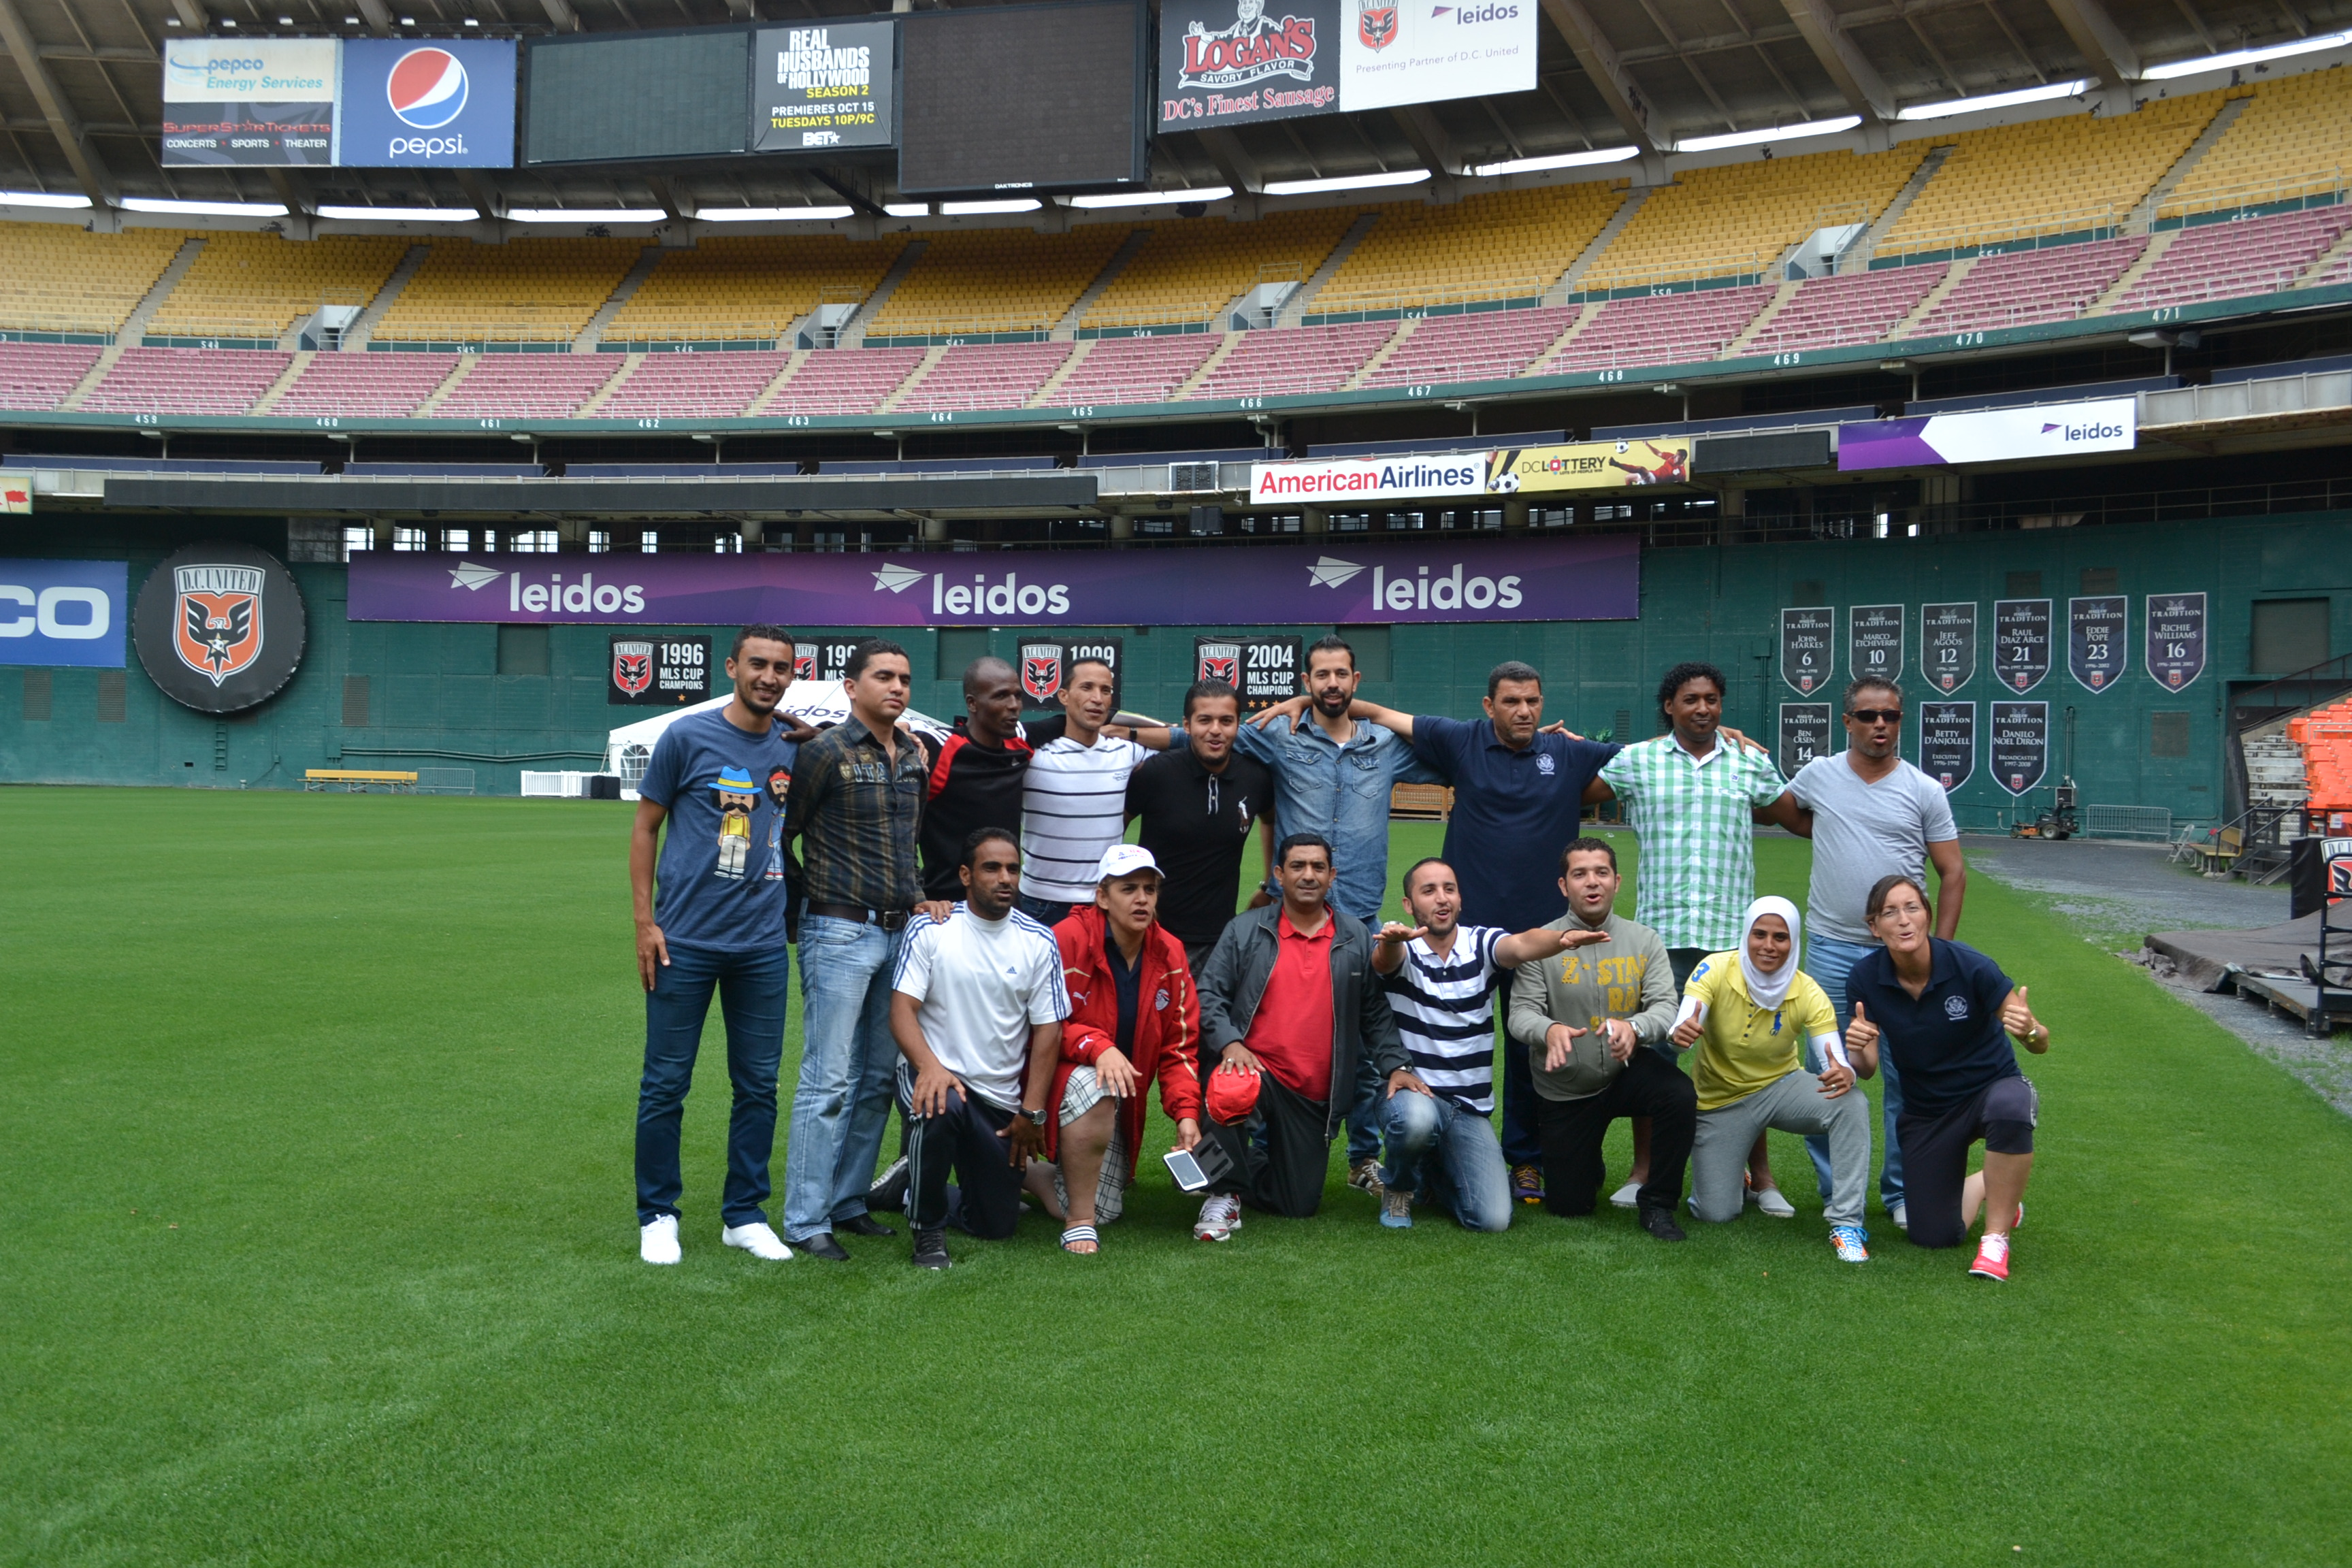 To kick off the World Cup in Brazil the NEA soccer coaches visit RFK stadium, home of DC United, to watch the opening game.